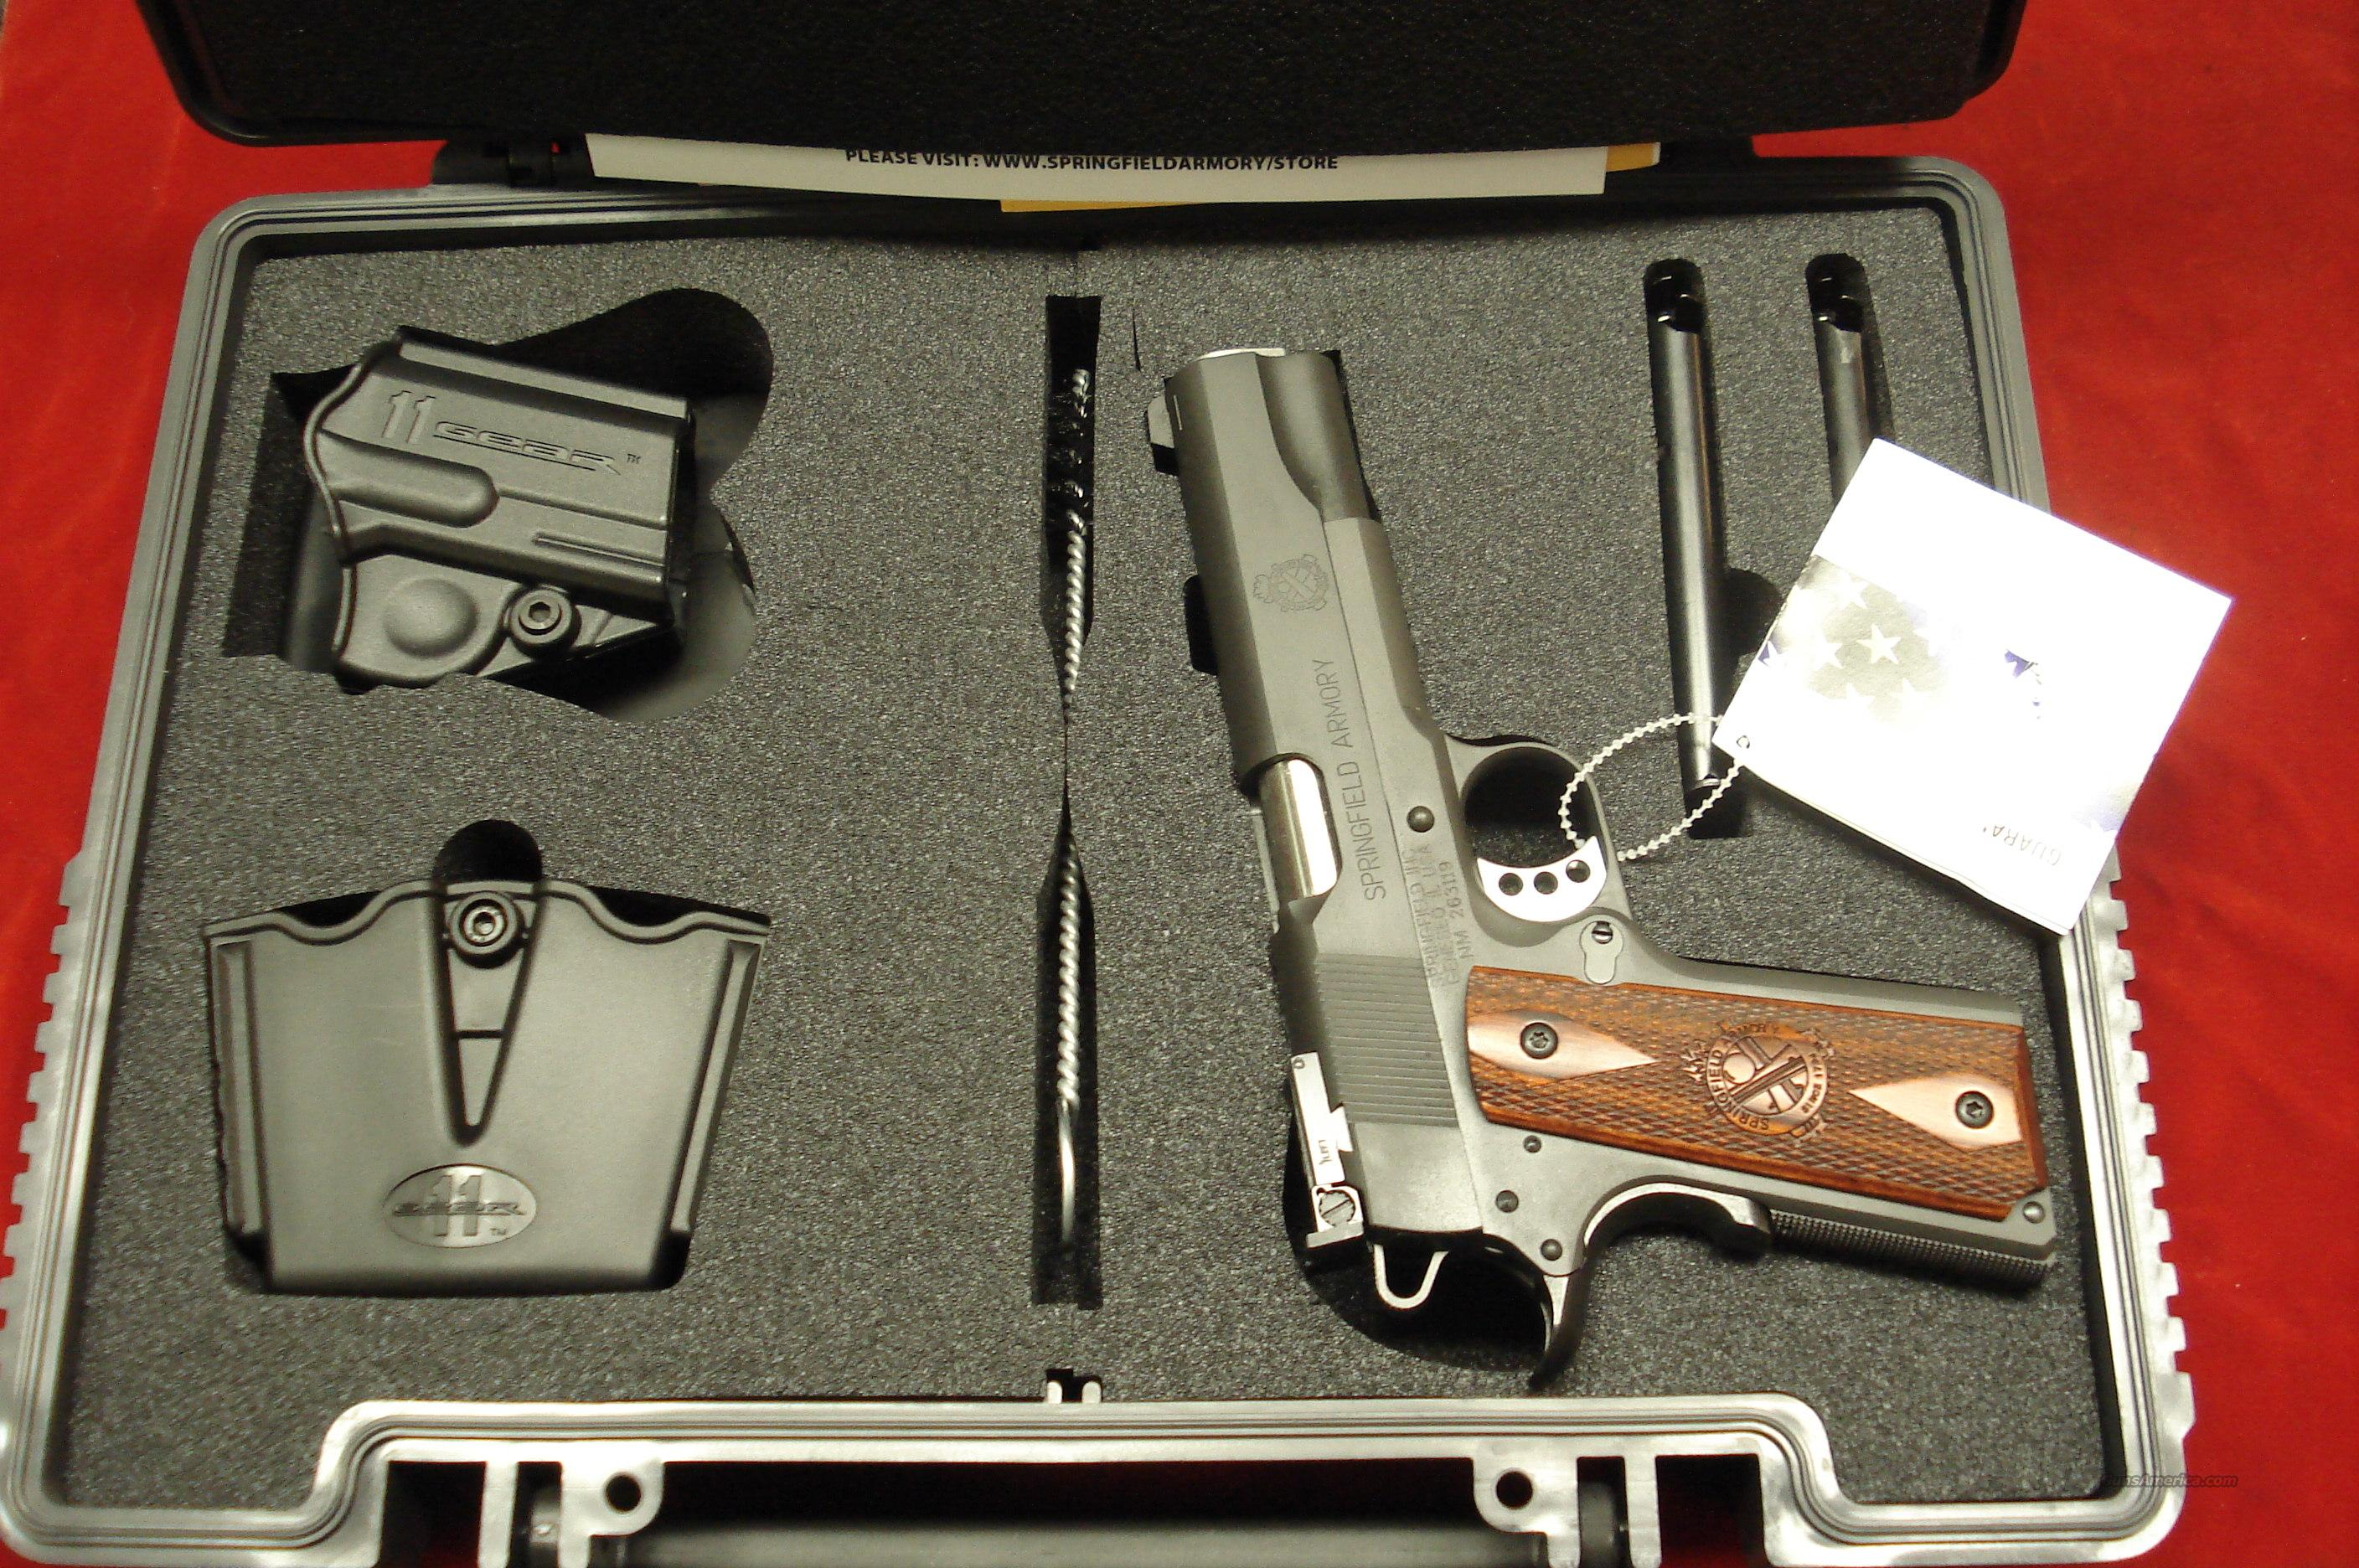 SPRINGFIELD ARMORY RANGE OFFICER PARKERIZED 1911 A1 LOADED ADJUSTABLE TARGET SIGHTS (PI9128LP) NEW   Guns > Pistols > Springfield Armory Pistols > 1911 Type